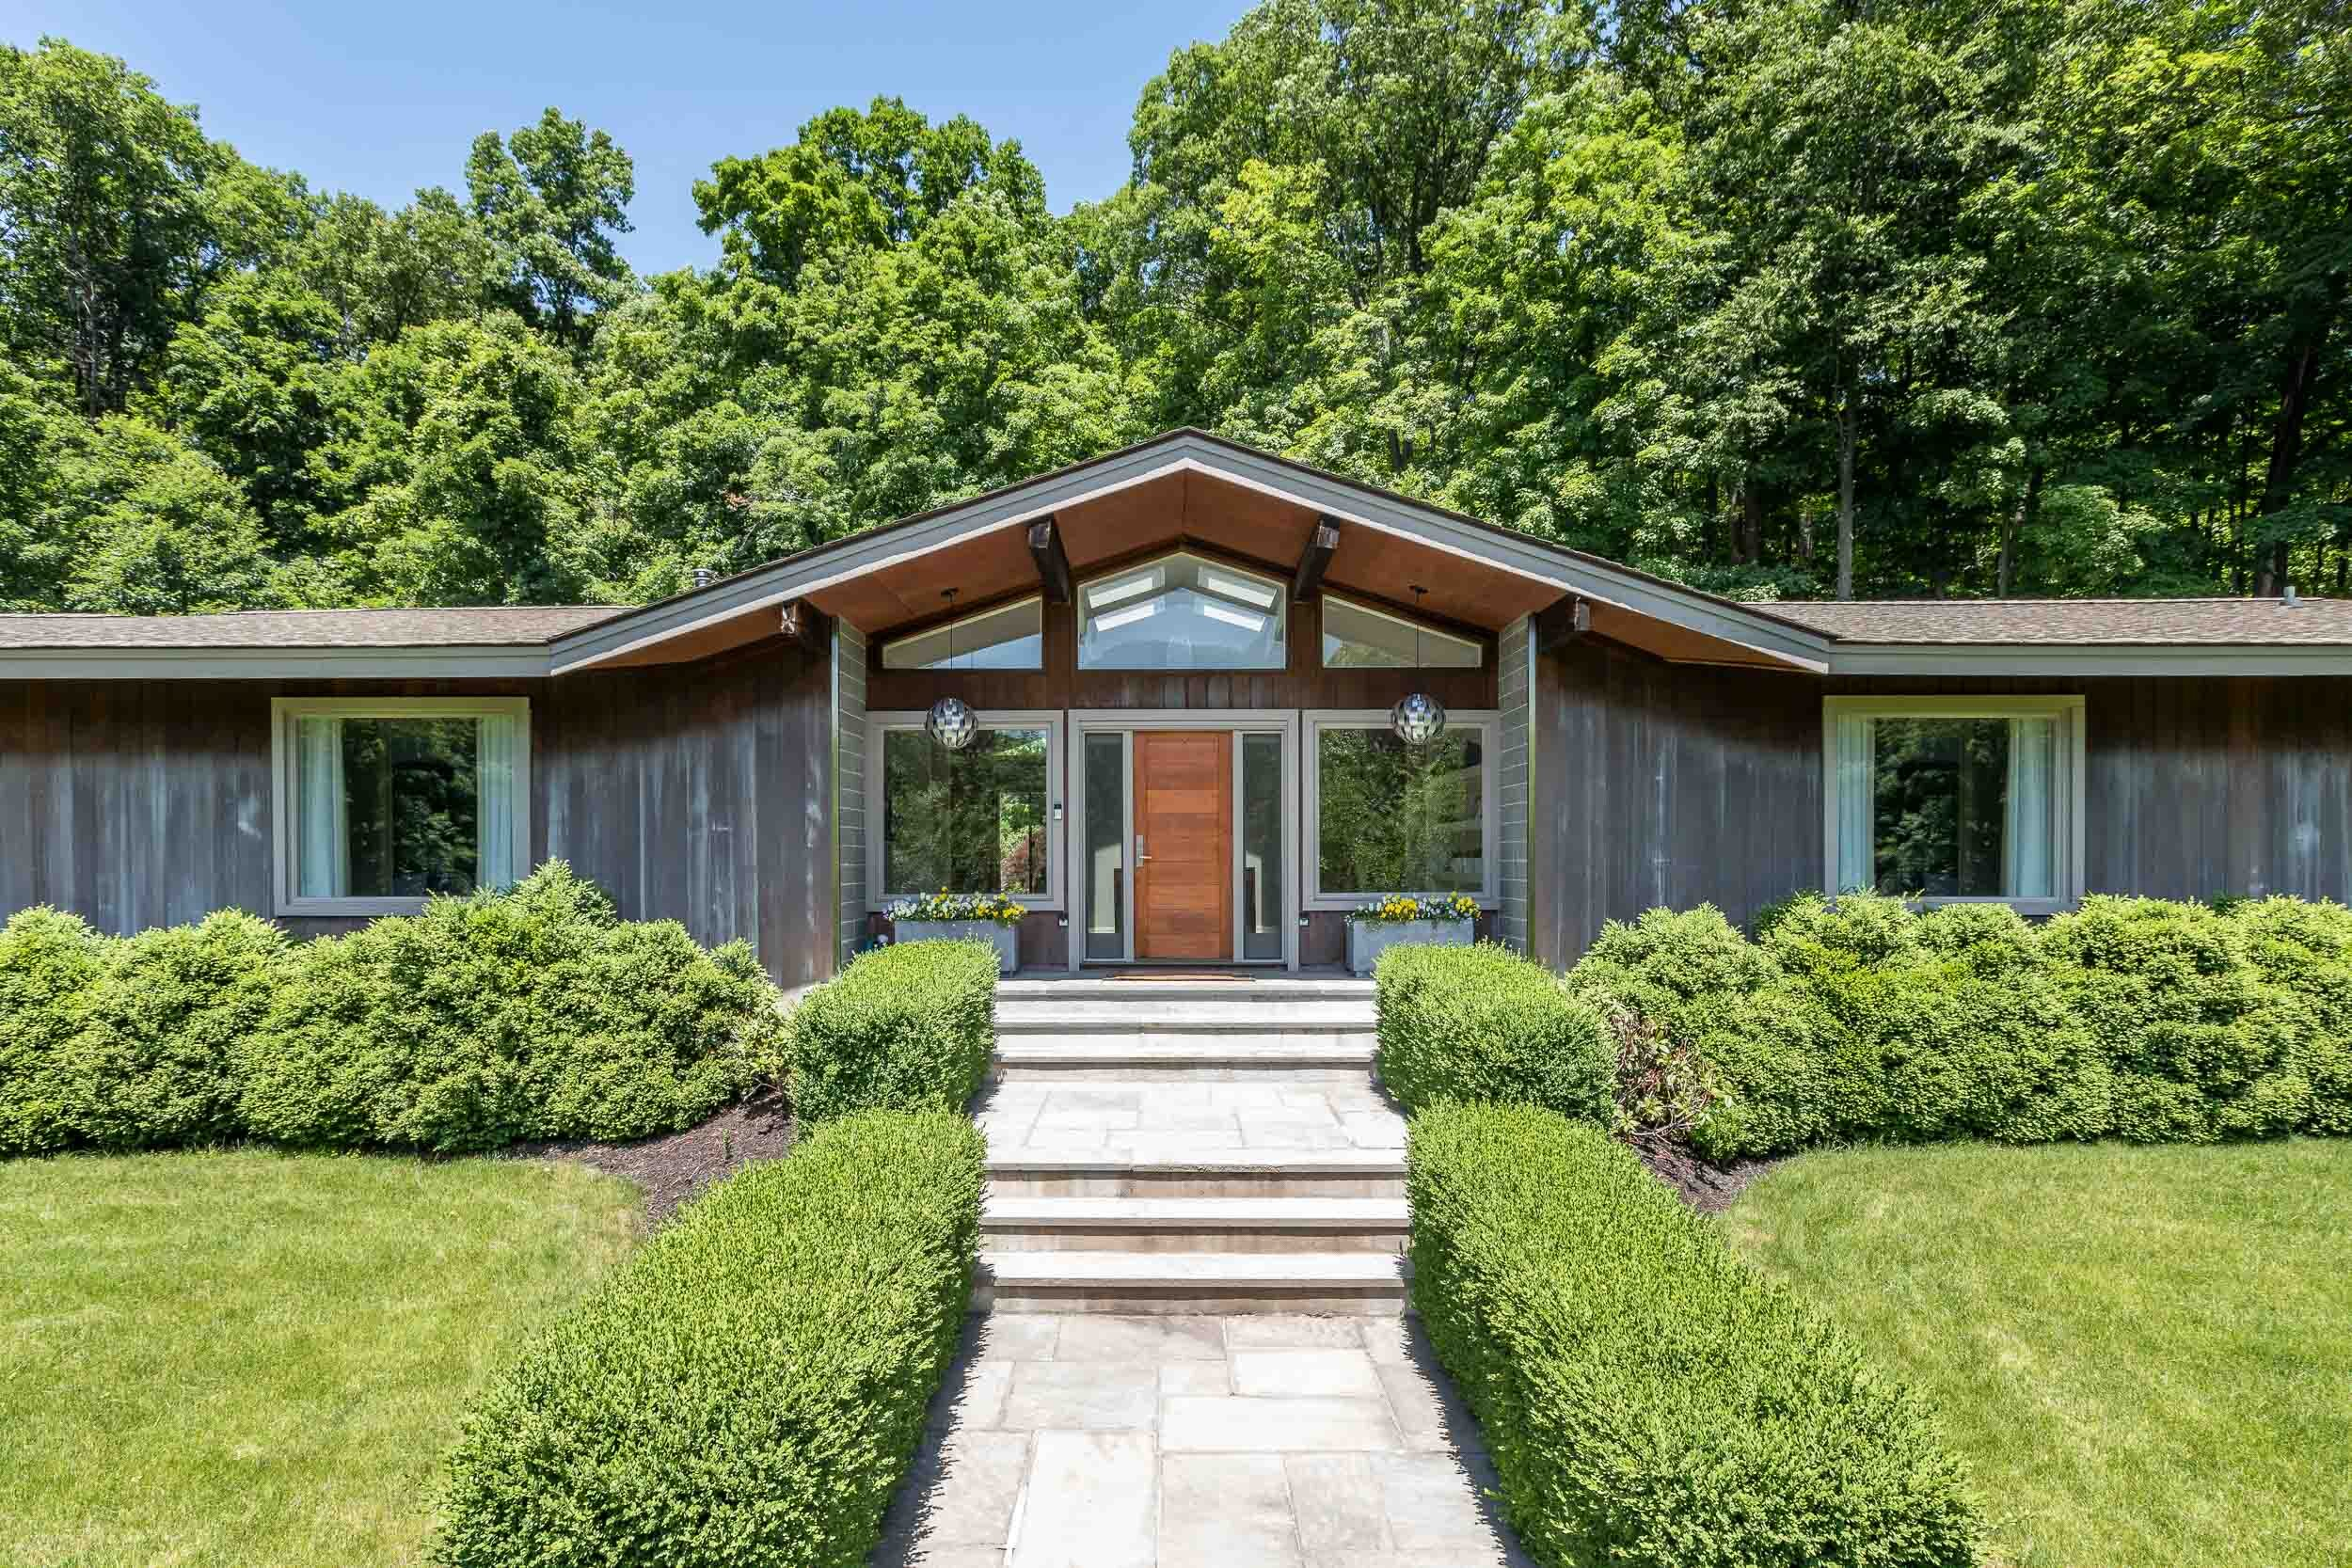 Architectural Exteriors Photography Architecture Exterior